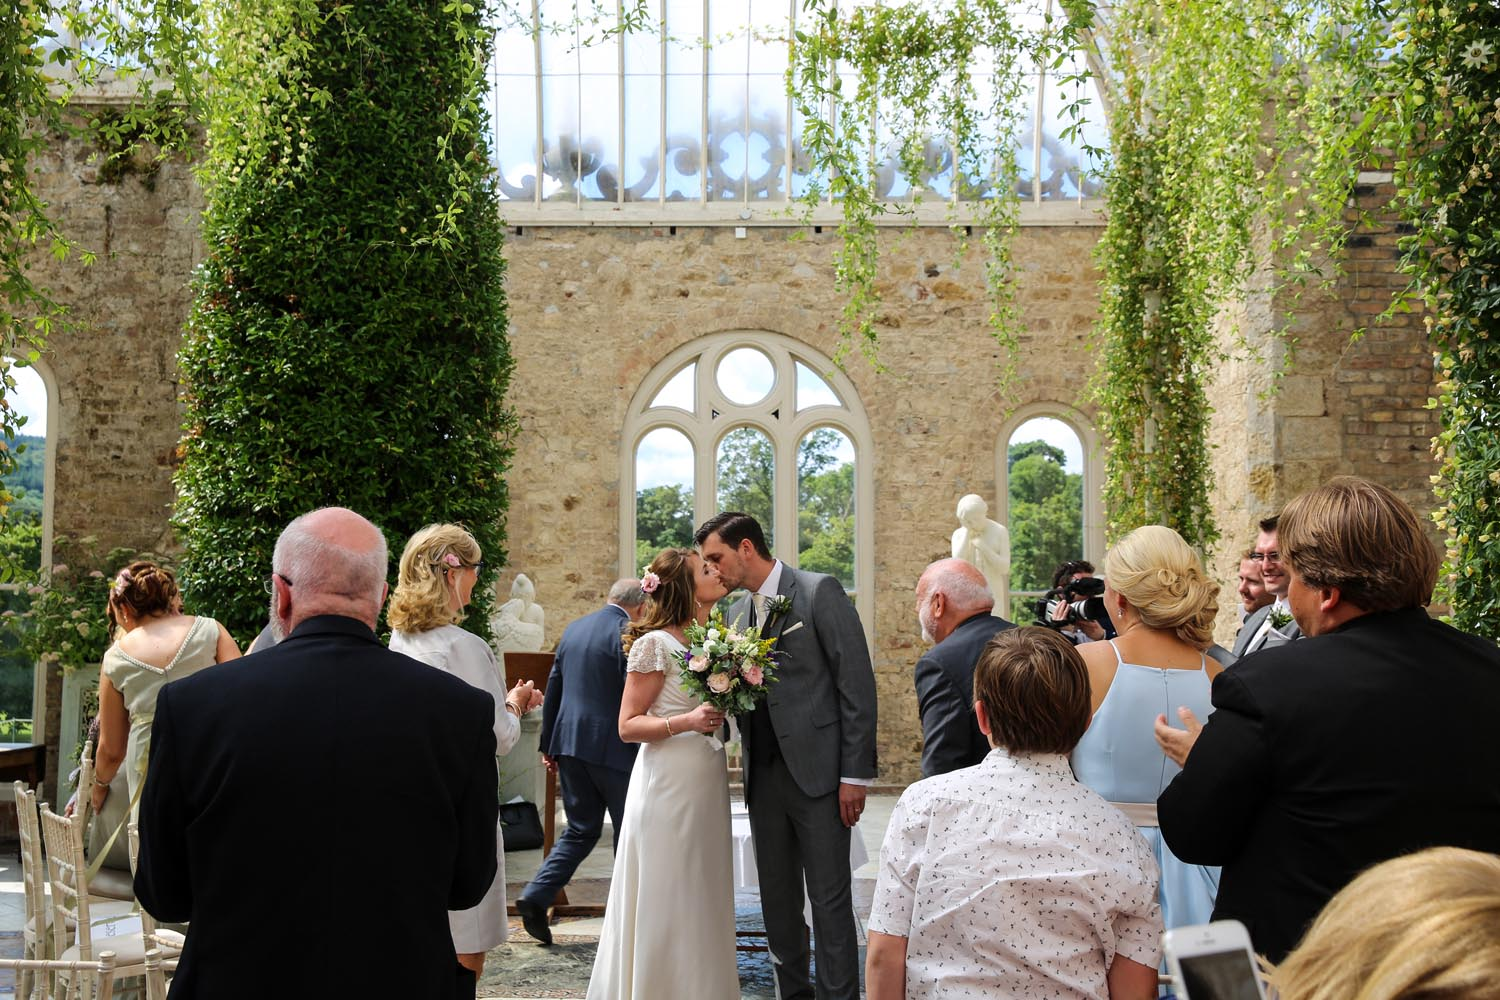 Wedding ceremony in The Orangery